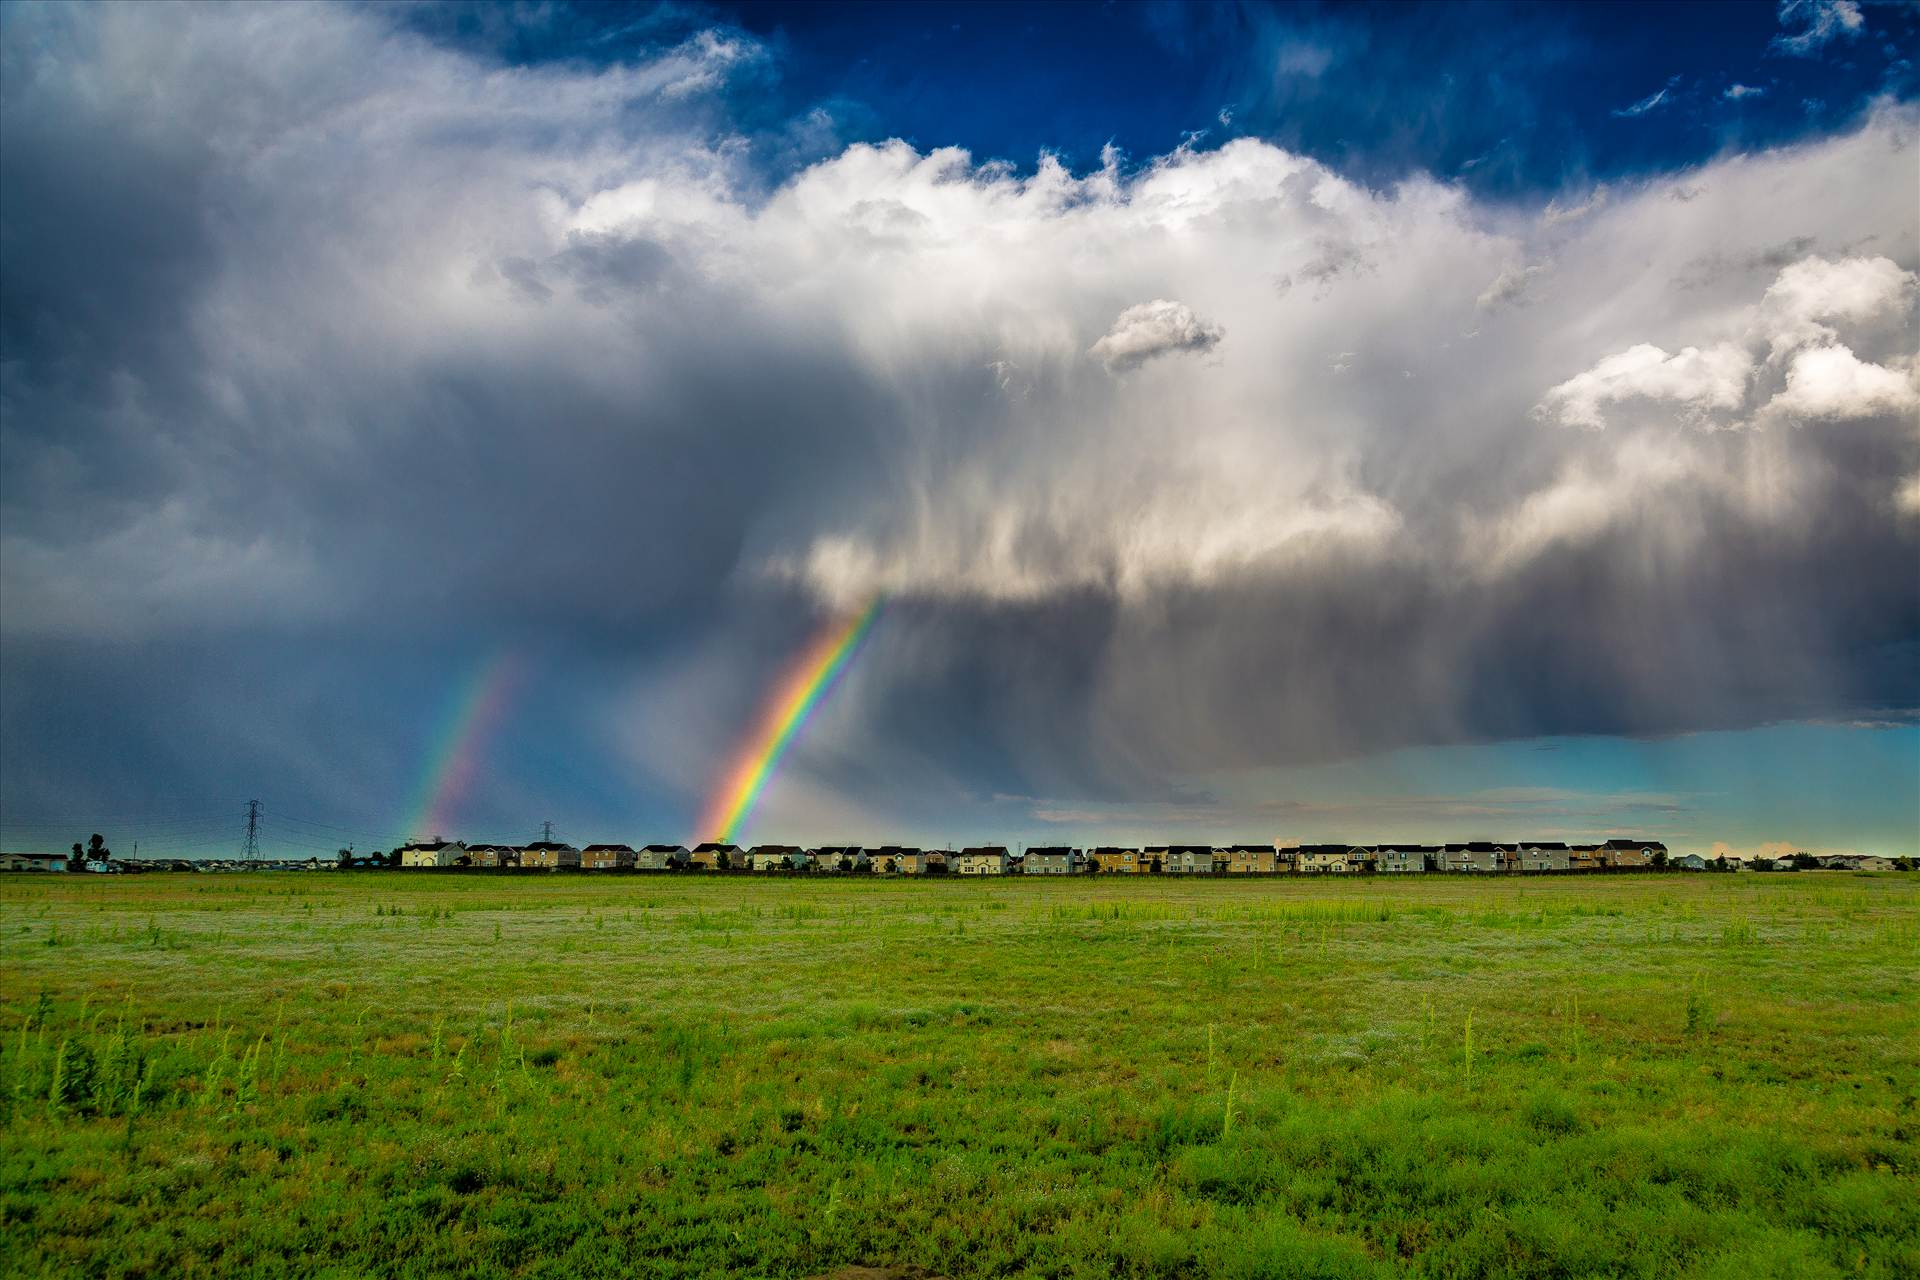 Suburbia Rainbow Connection - A double rainbow breaks through some clouds east of Denver. by D Scott Smith